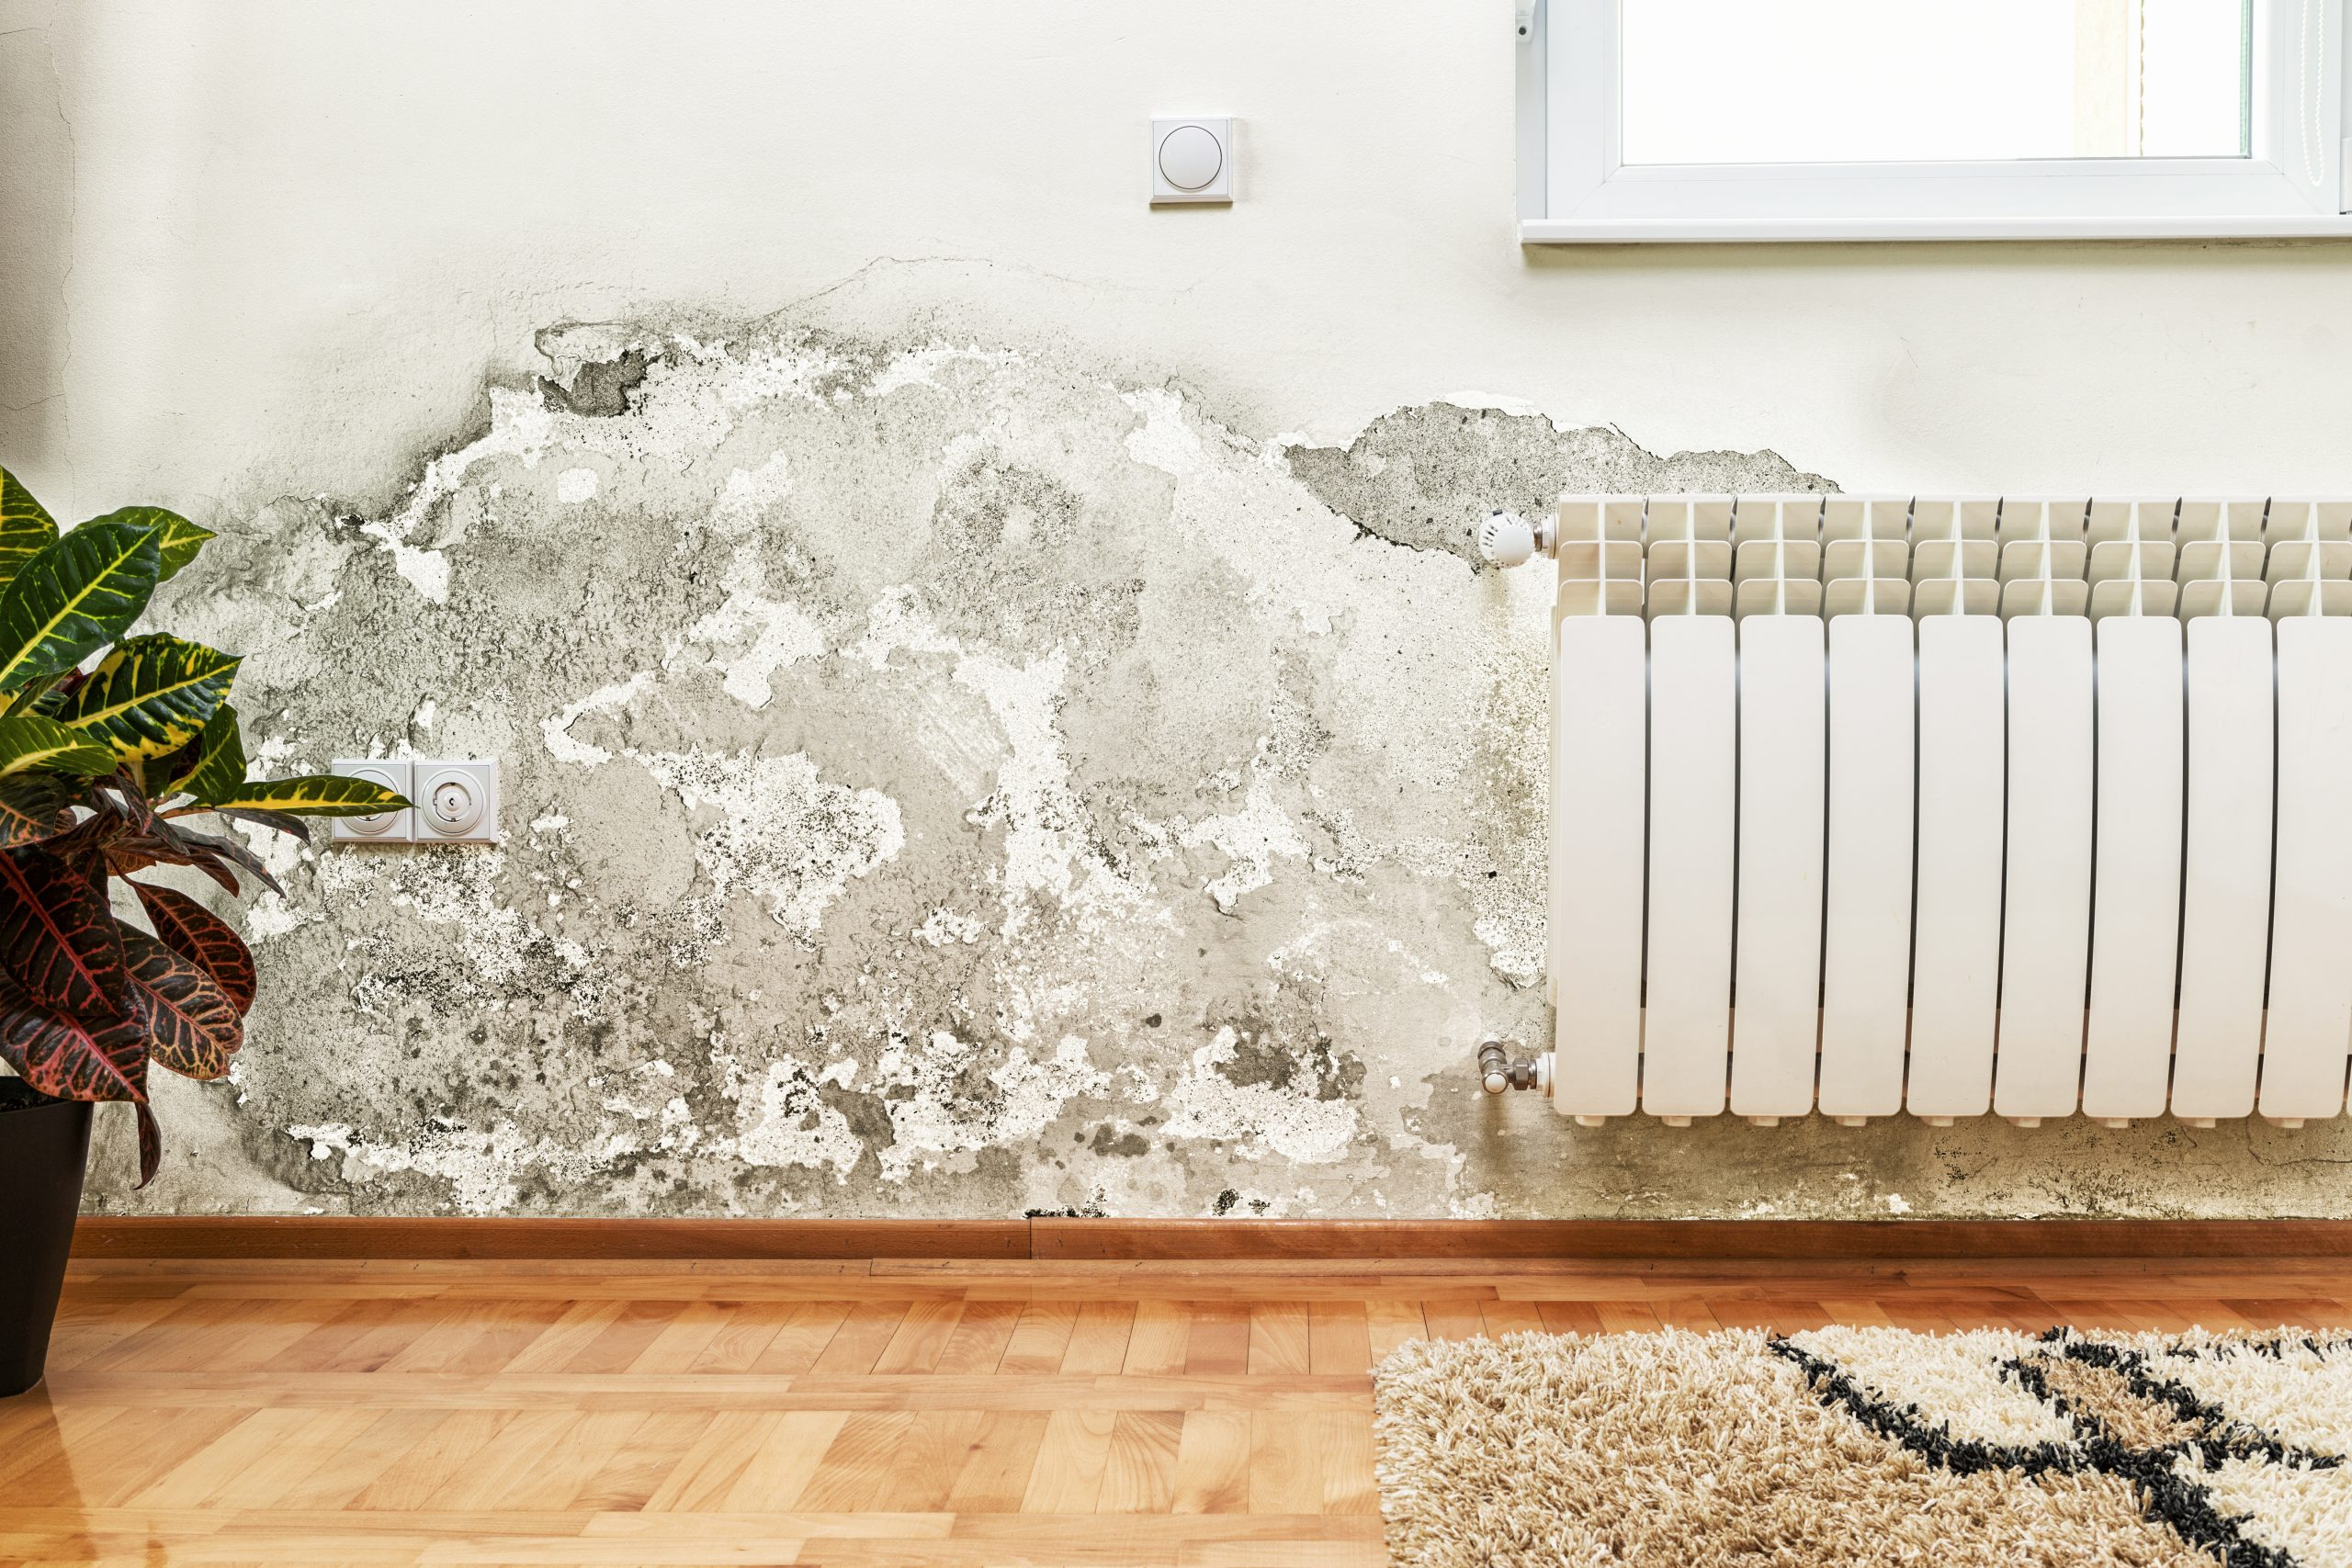 What to Do When Your Home or Business Falls Victim to Water Damage